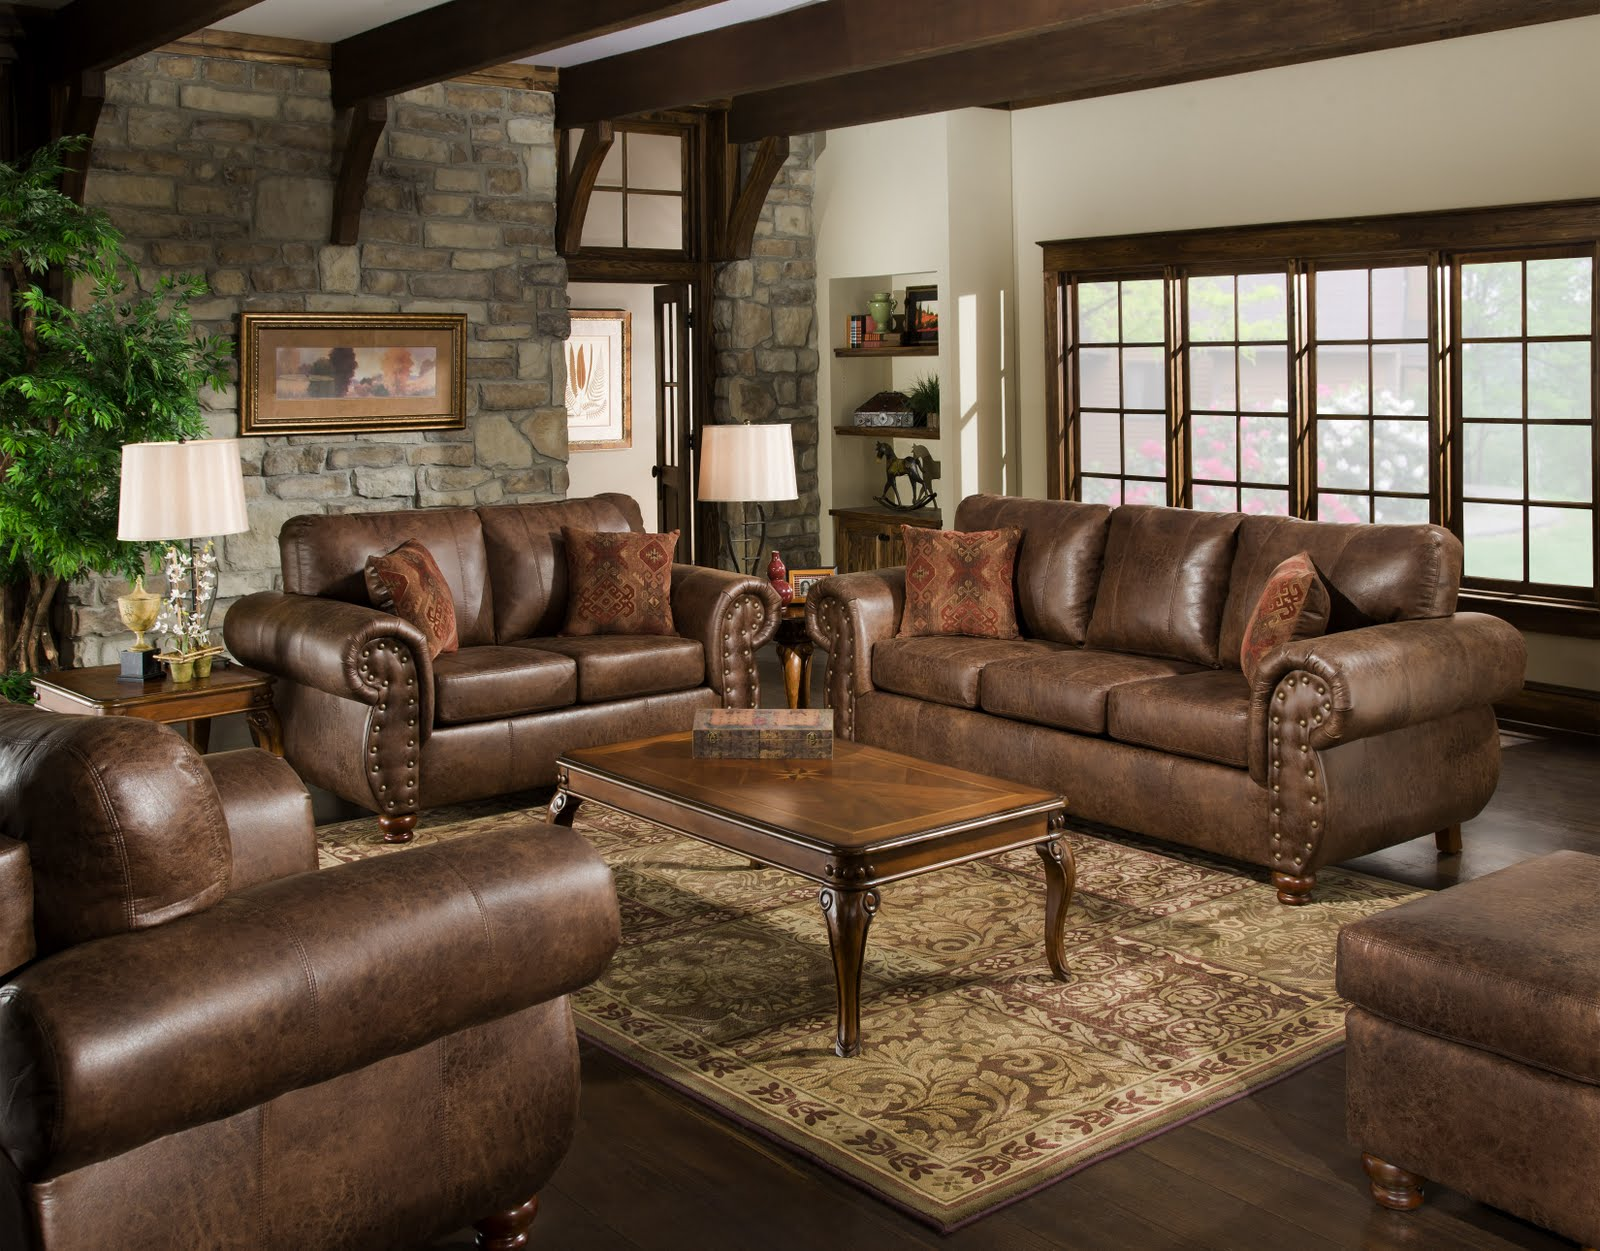 If you want to implement neutral, brown colours into your spaces, know that there is a repertoire of leather furniture styles that will provide you with exactly what you are looking for.